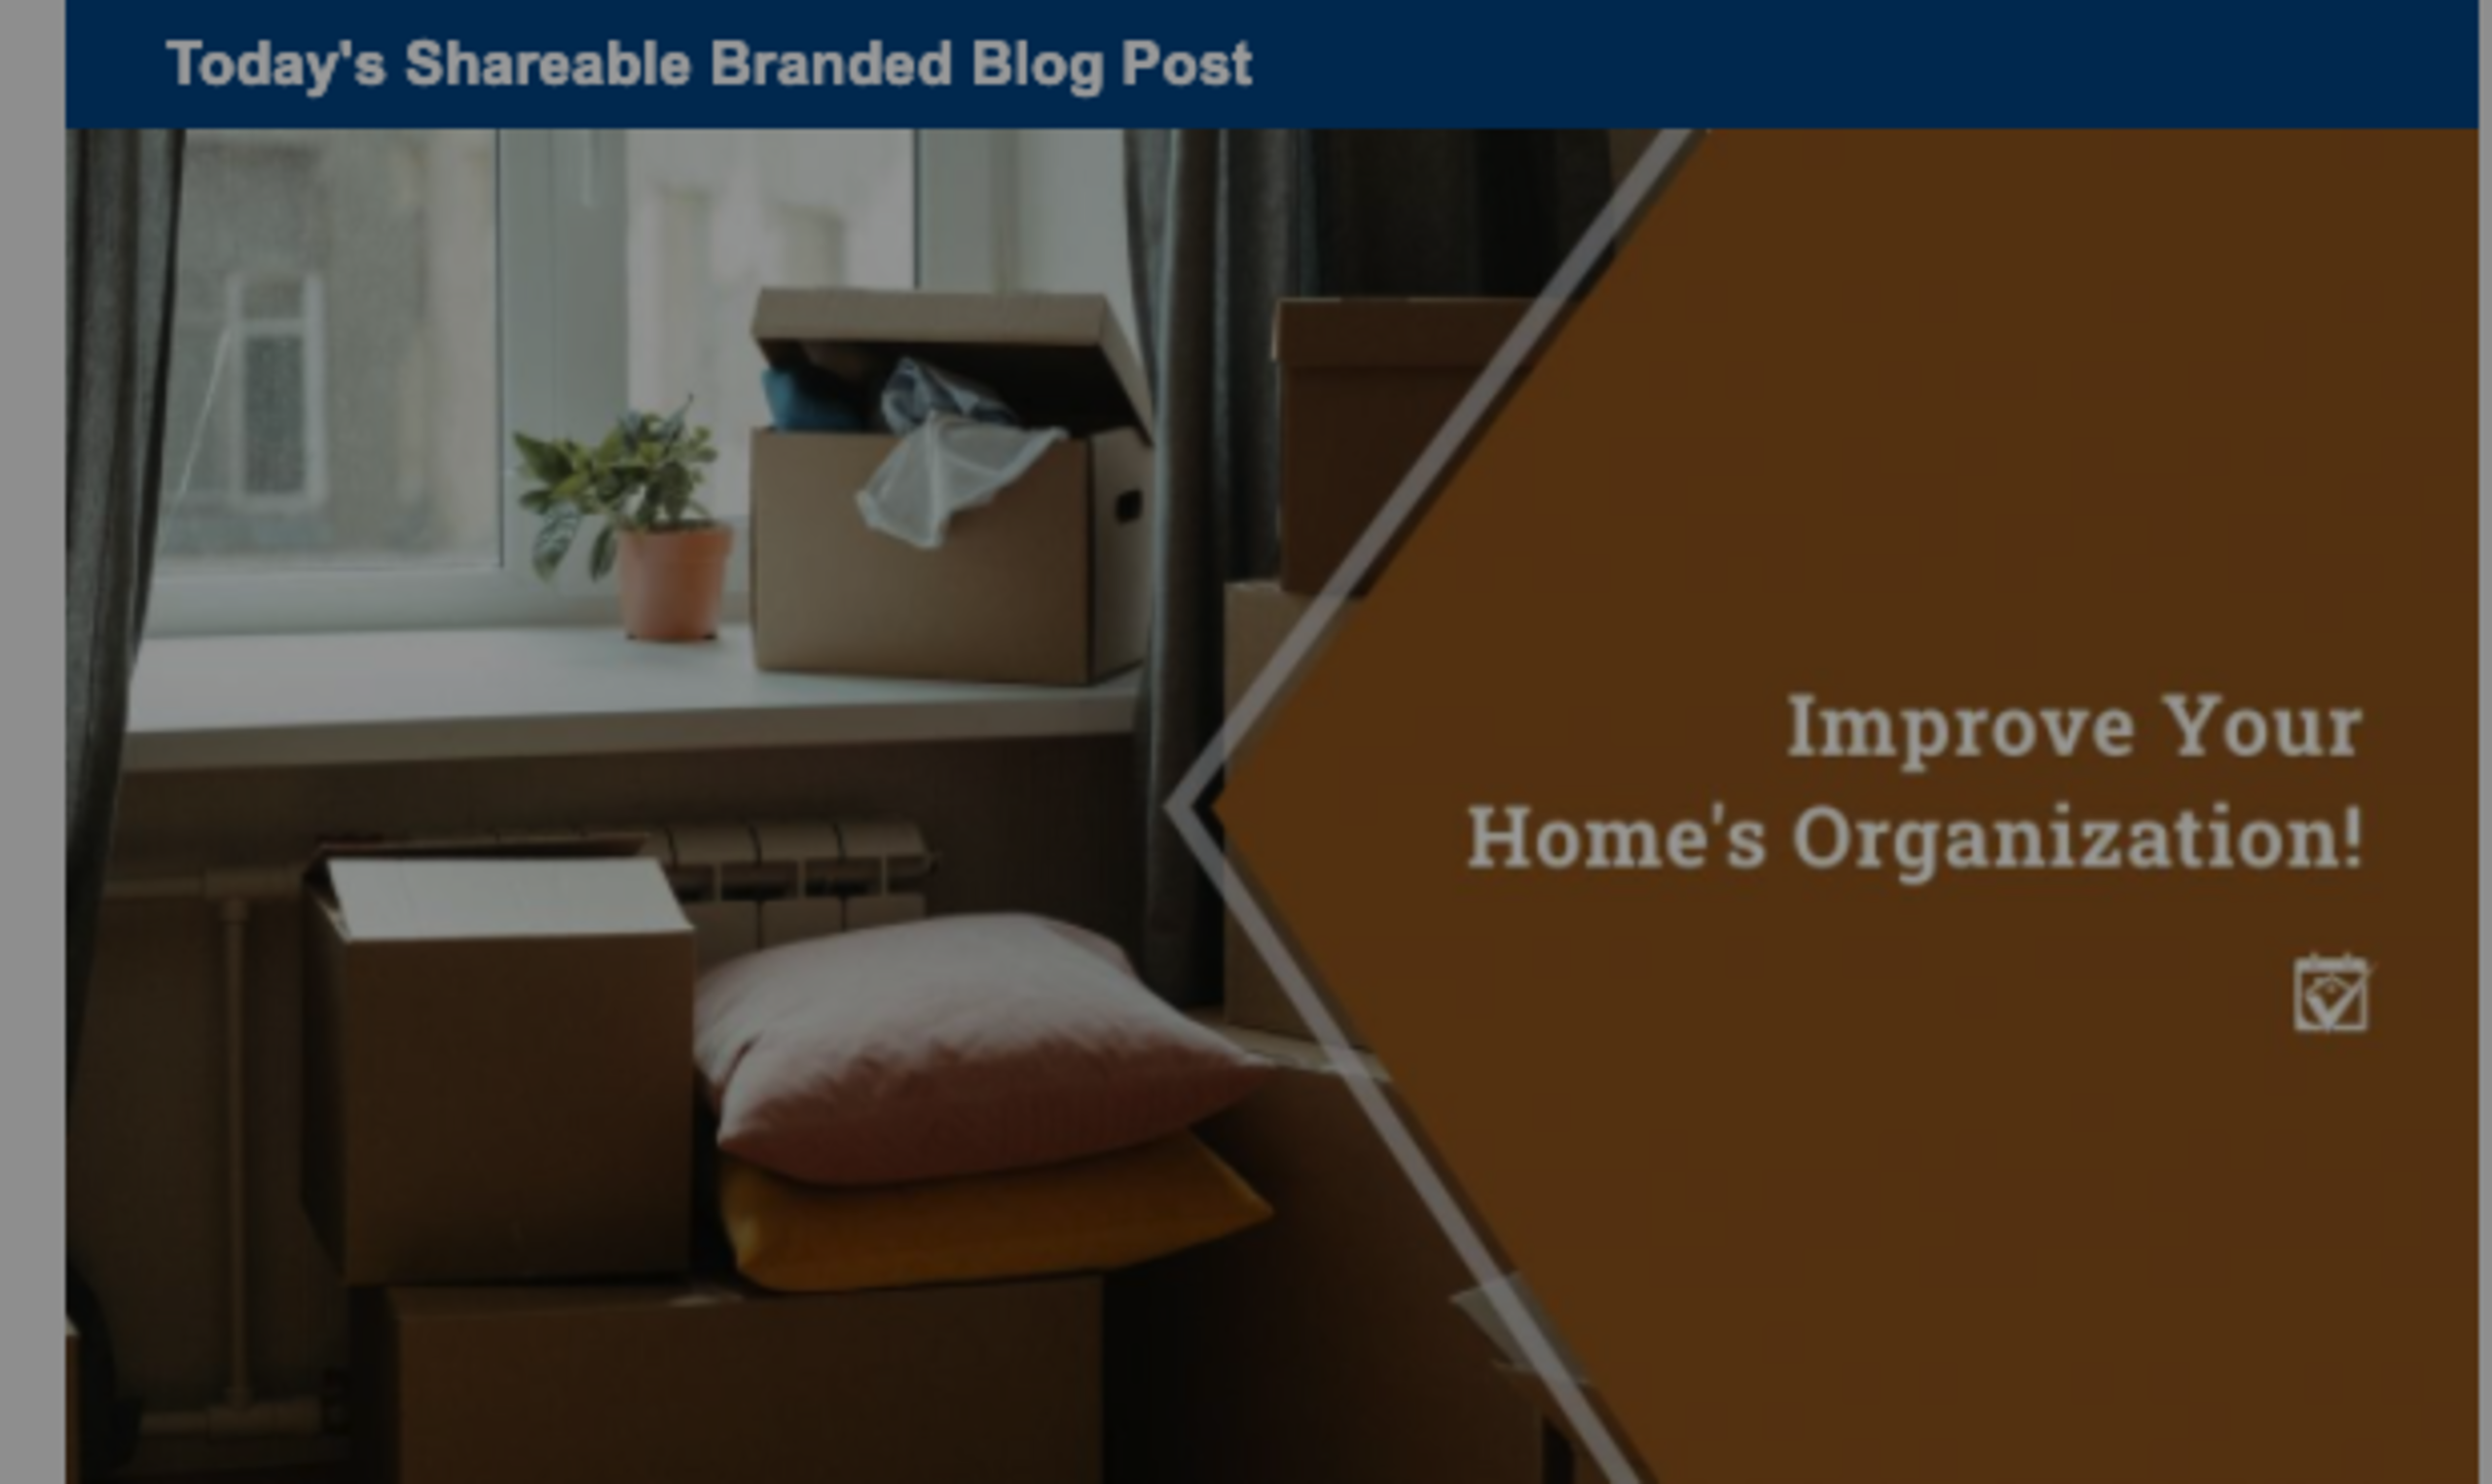 Improve Your Home's Organization!